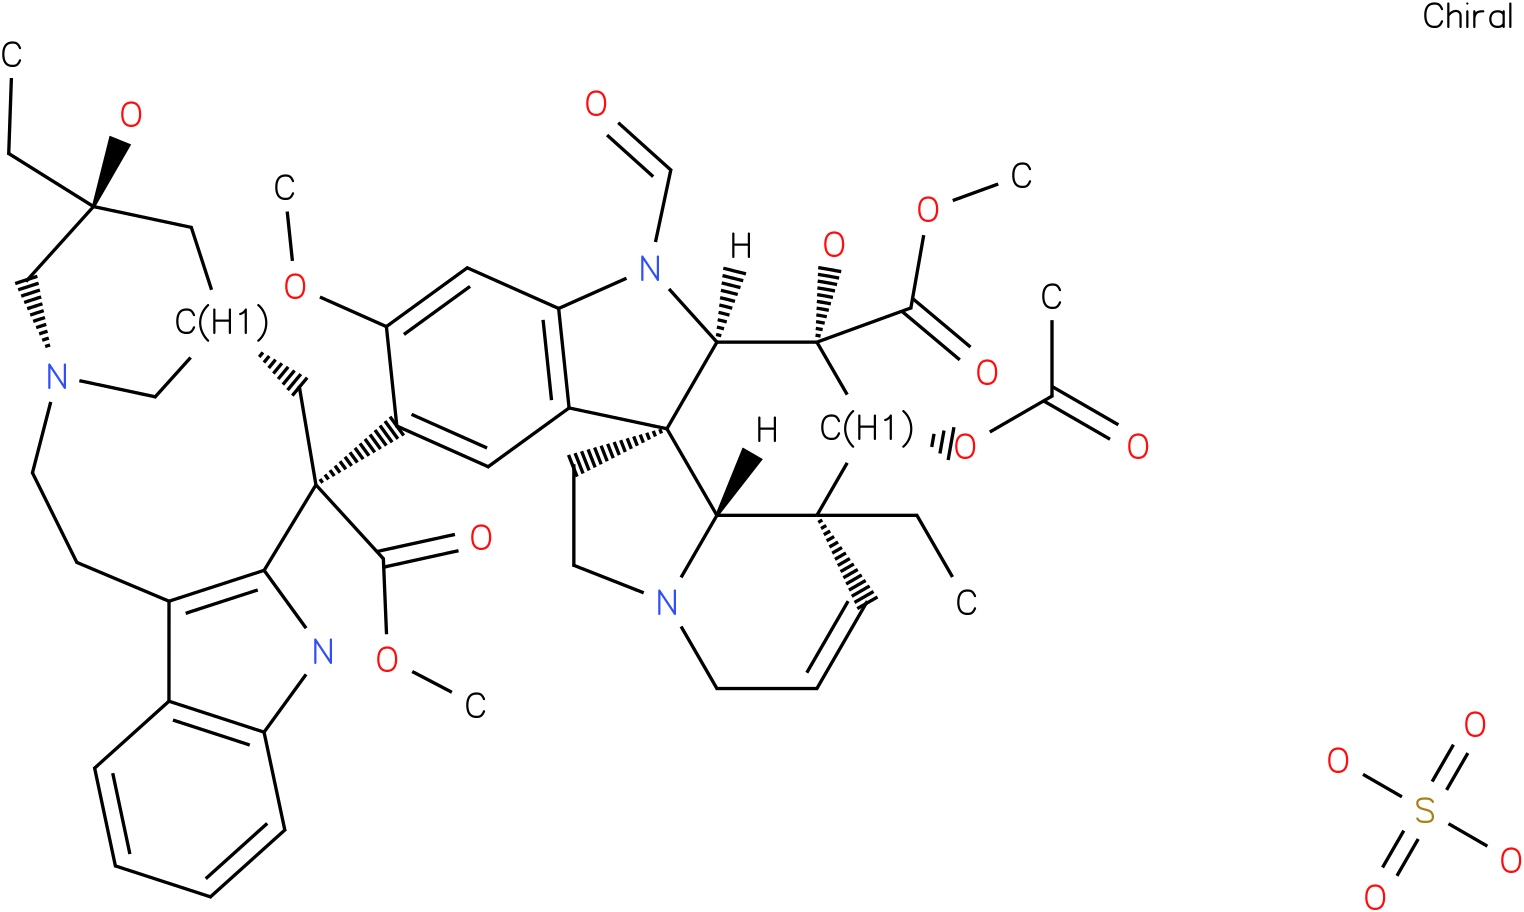 7-methyl-1H-pyrrolo[3,2-b]pyridine